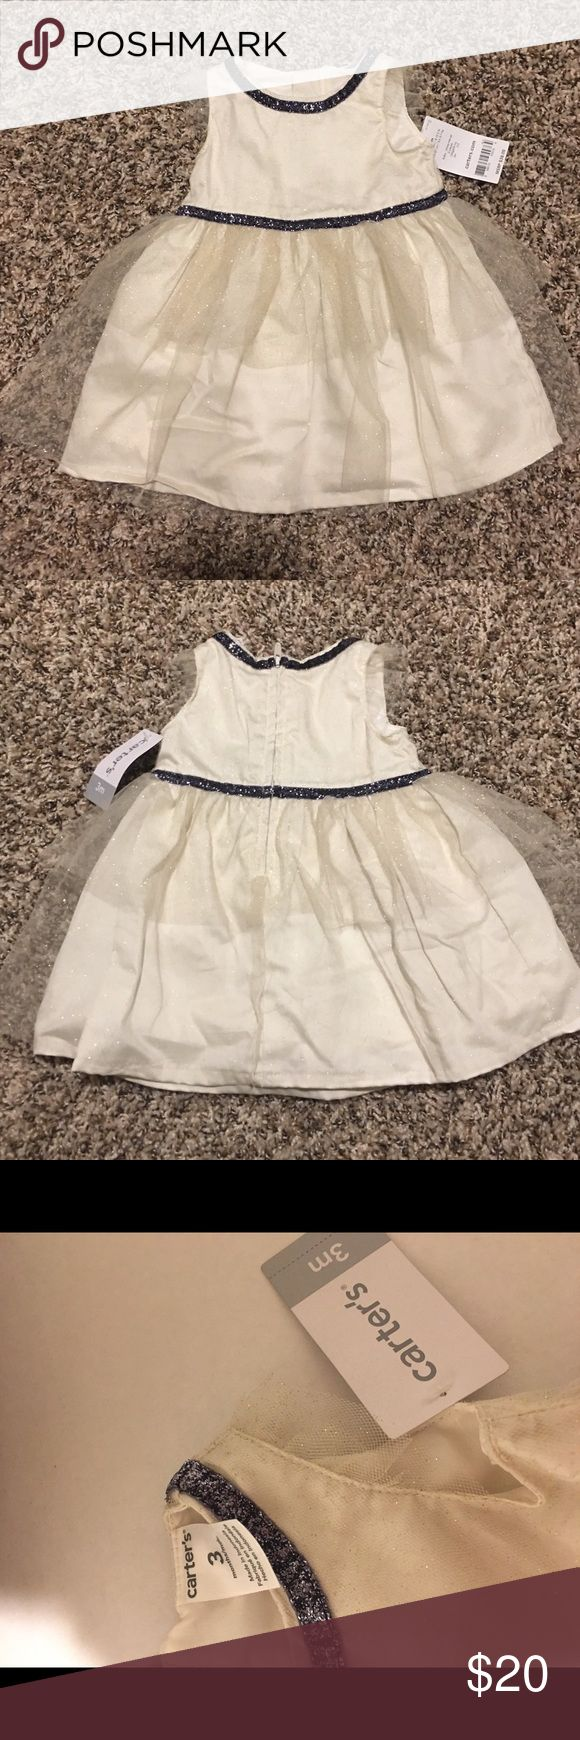 Carters dress NWT adorable dress! Perfect for the holidays! The tag says there are two pieces all I have it's the dress Carter's Dresses Formal